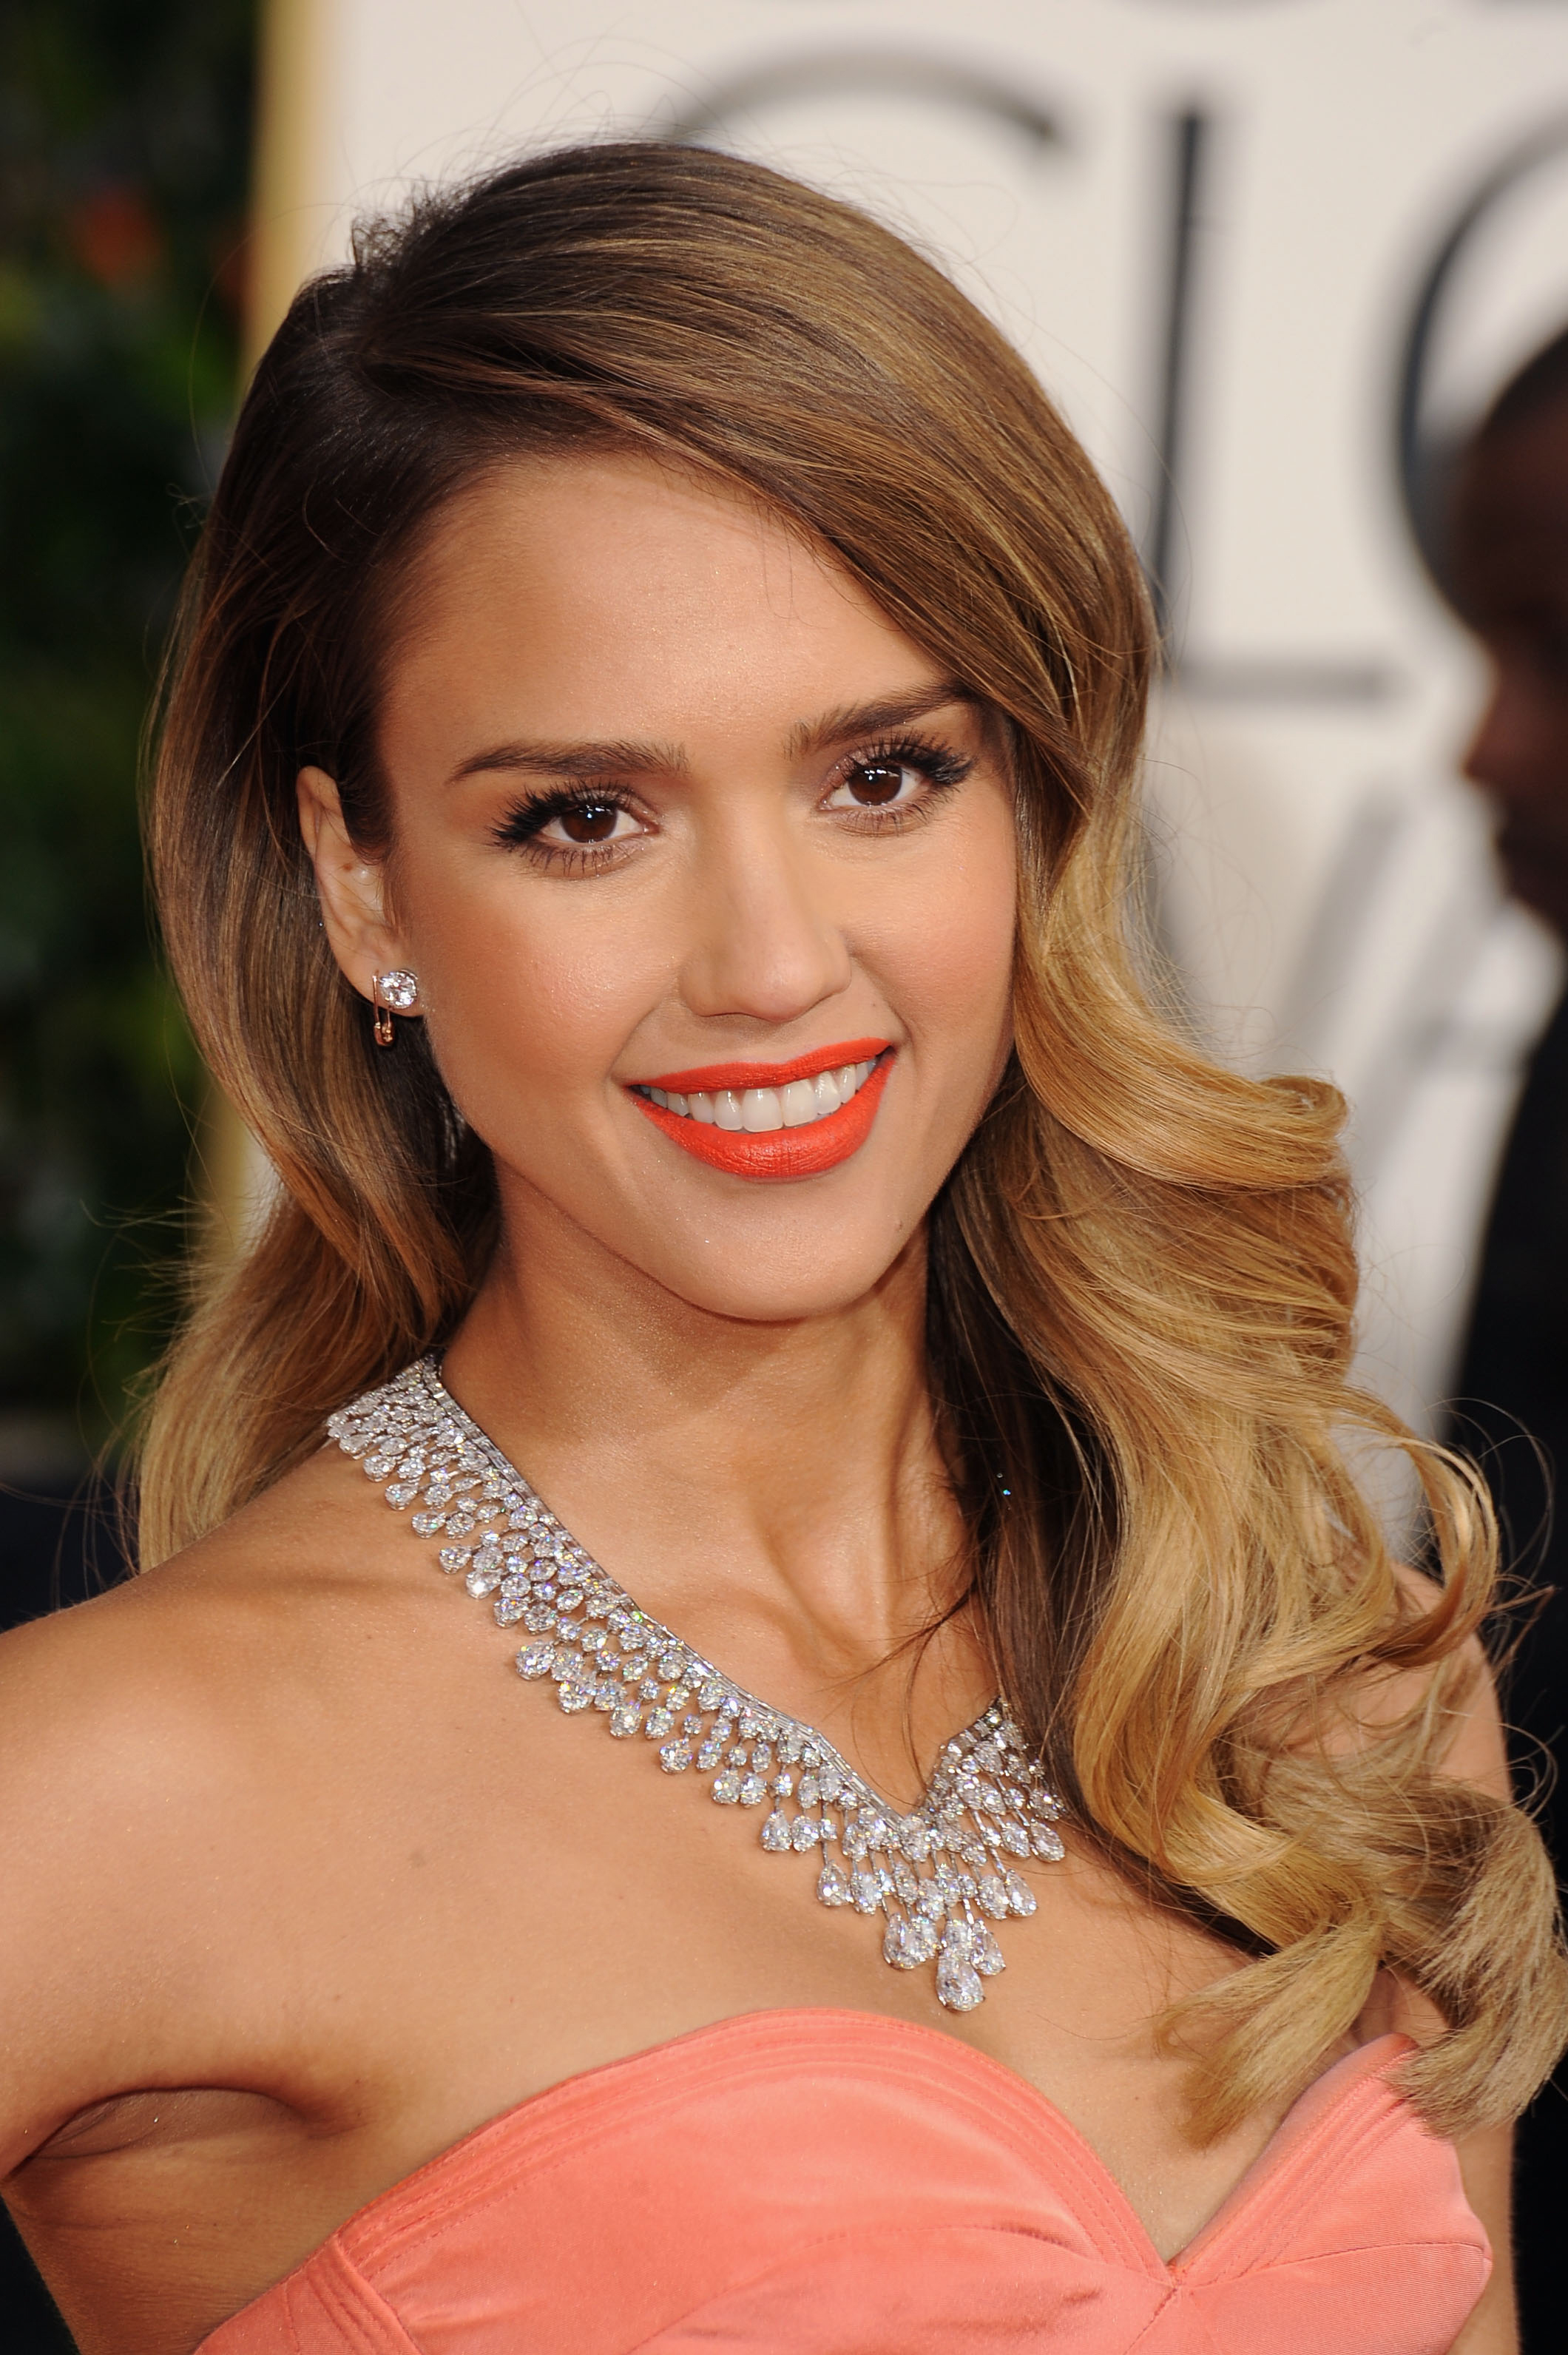 Get the Look: Jessica Alba at 2013 Golden Globes